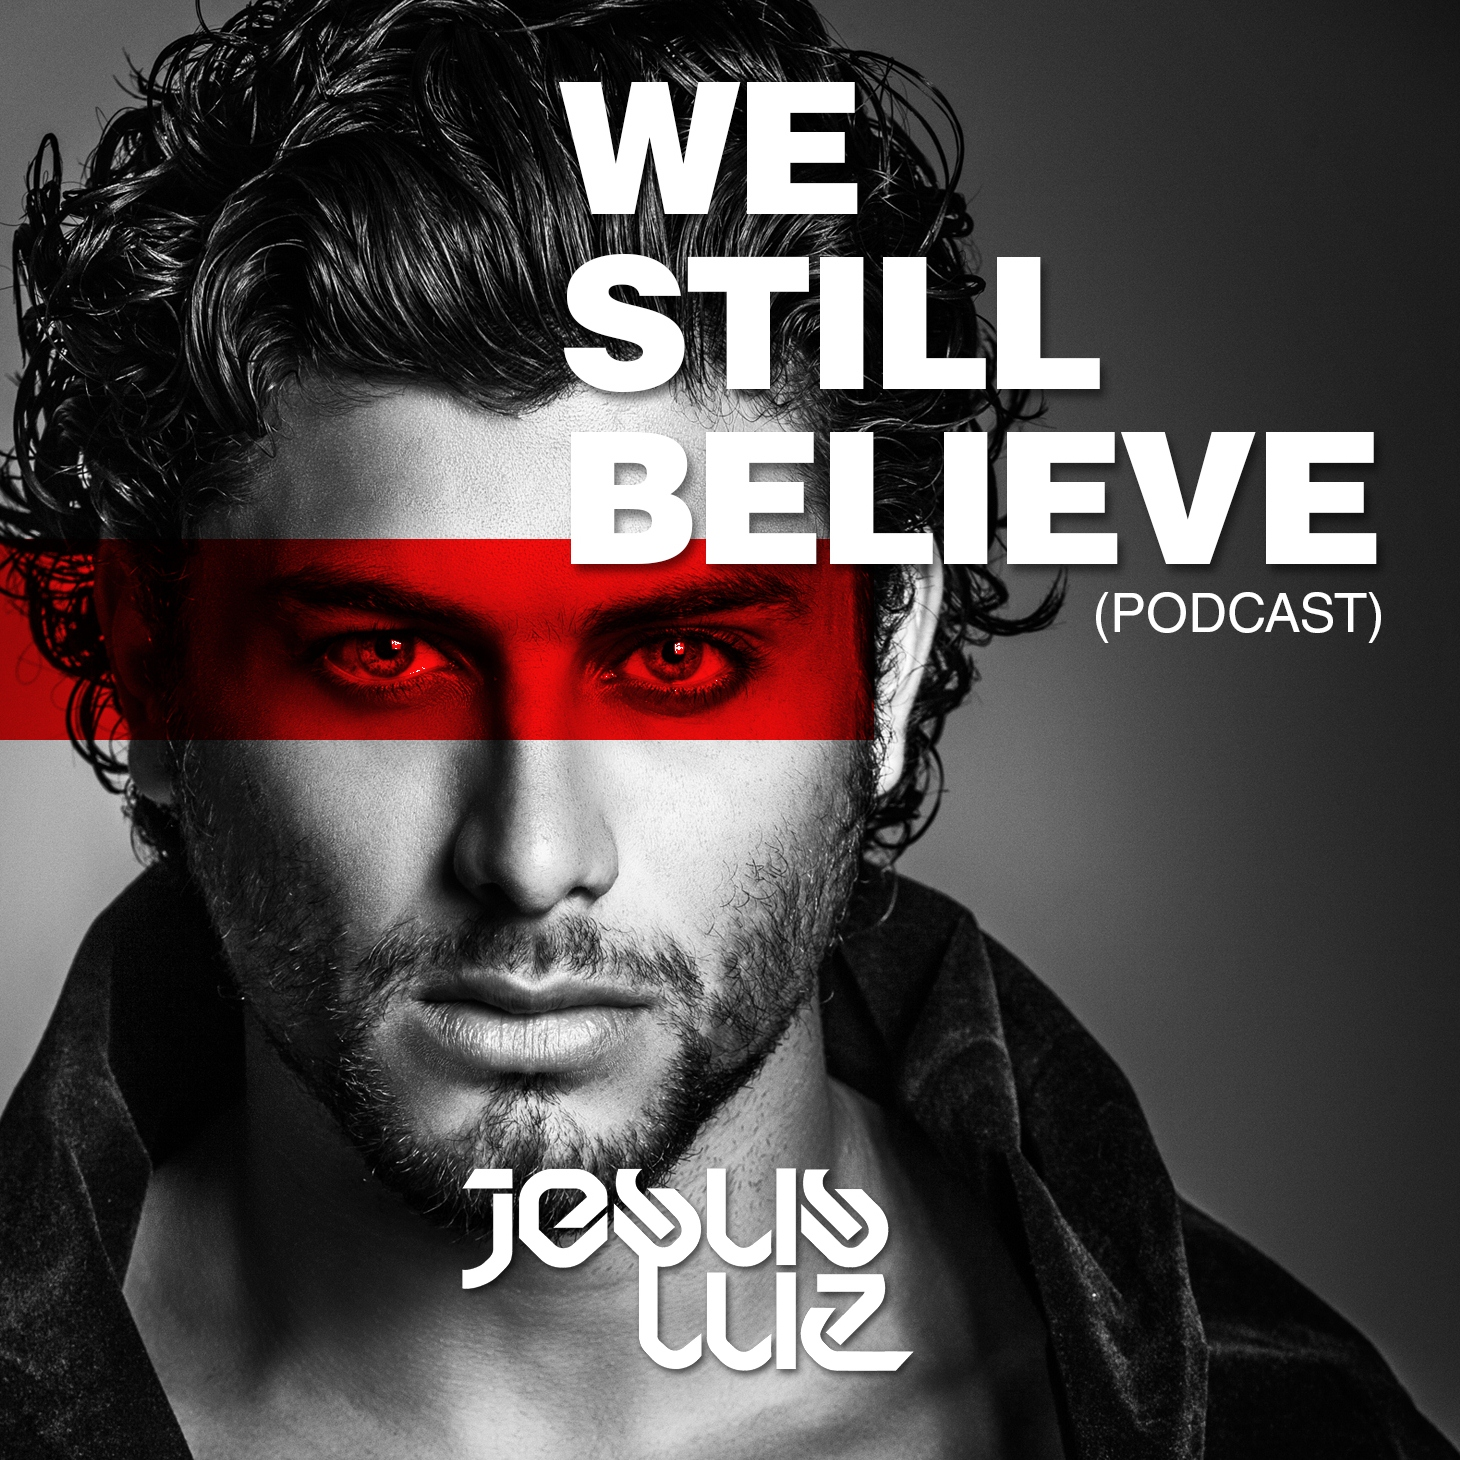 Jesus Luz - We Still Believe (Podcast)